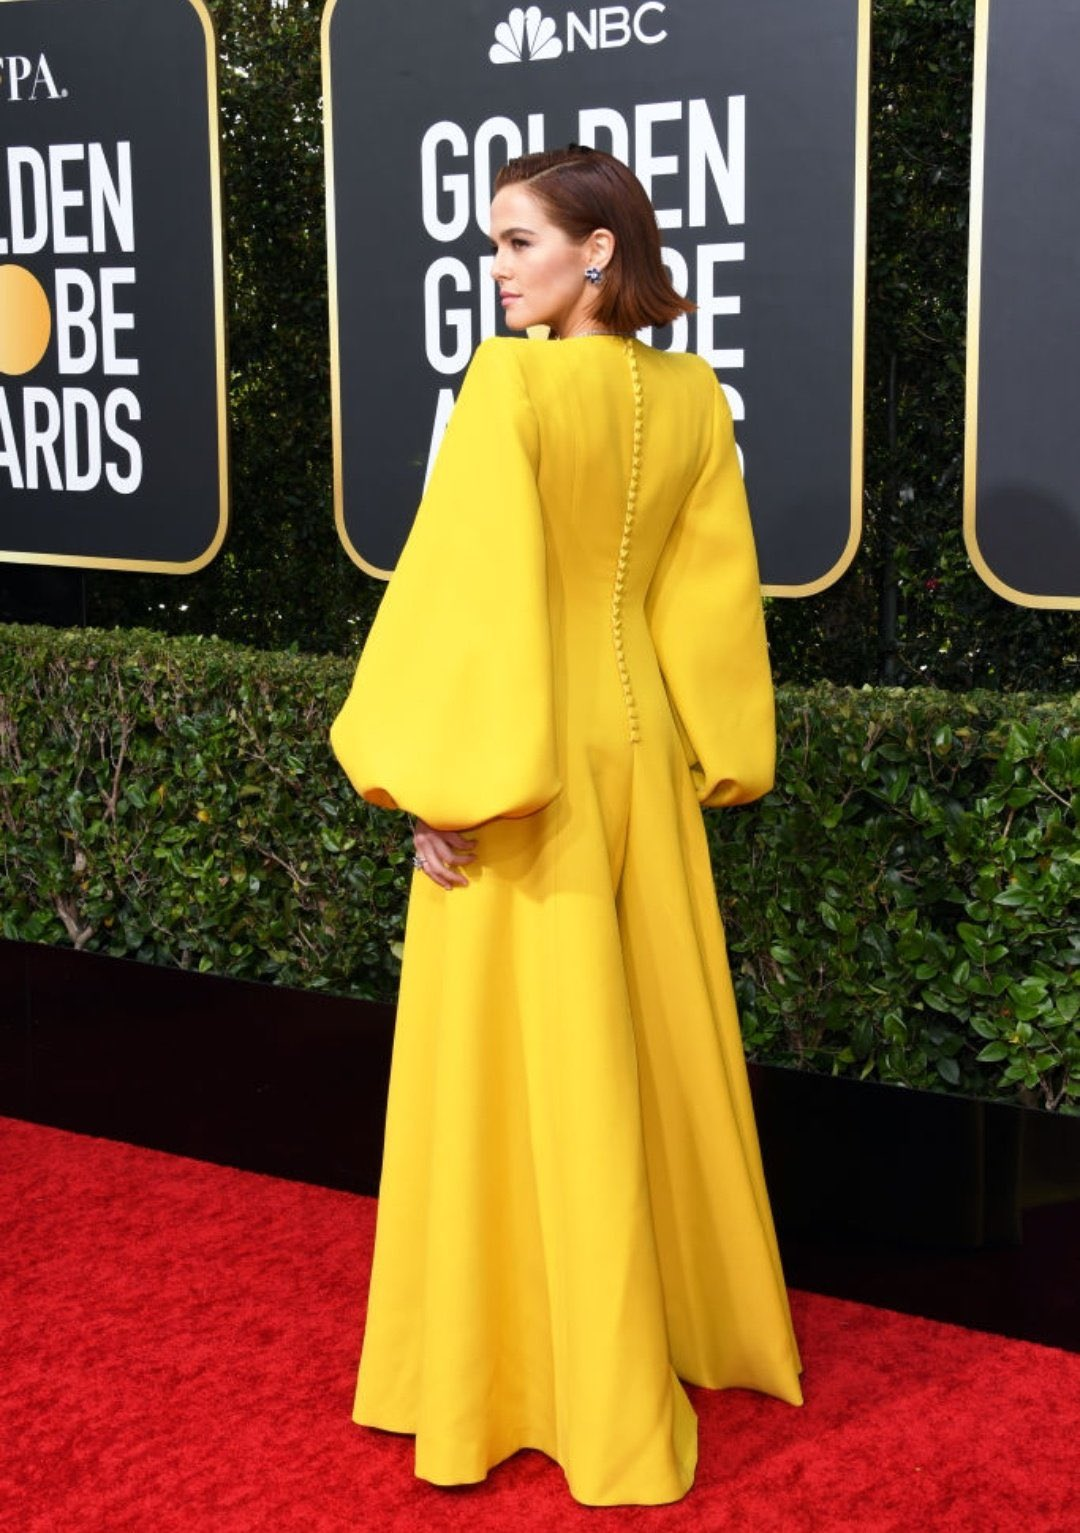 'The Politician' star Zoey Deutch looks gorgeous in yellow on the Golden Globes red carpet.